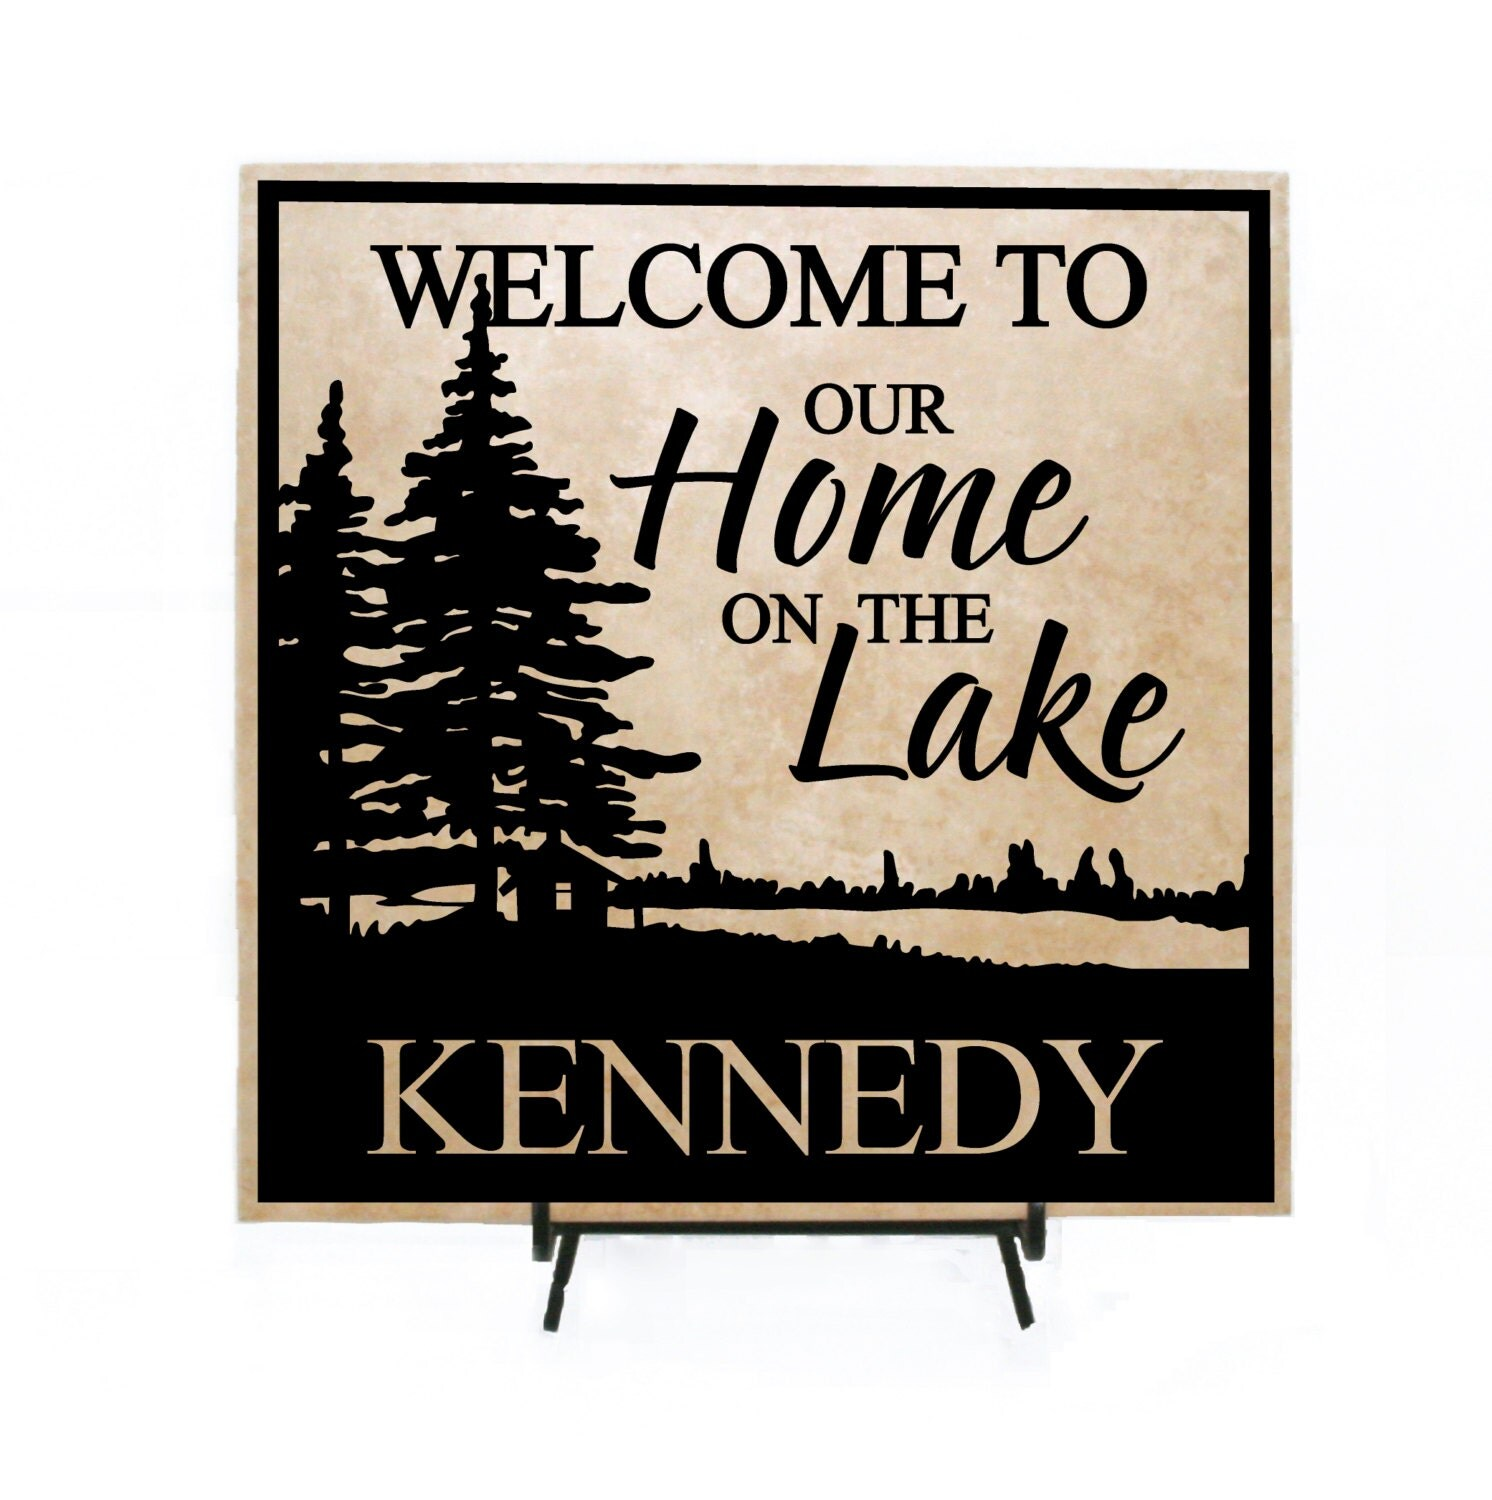 Welcome To Our Home: Welcome To Our Home On The Lake Personalized Sign Lake Home